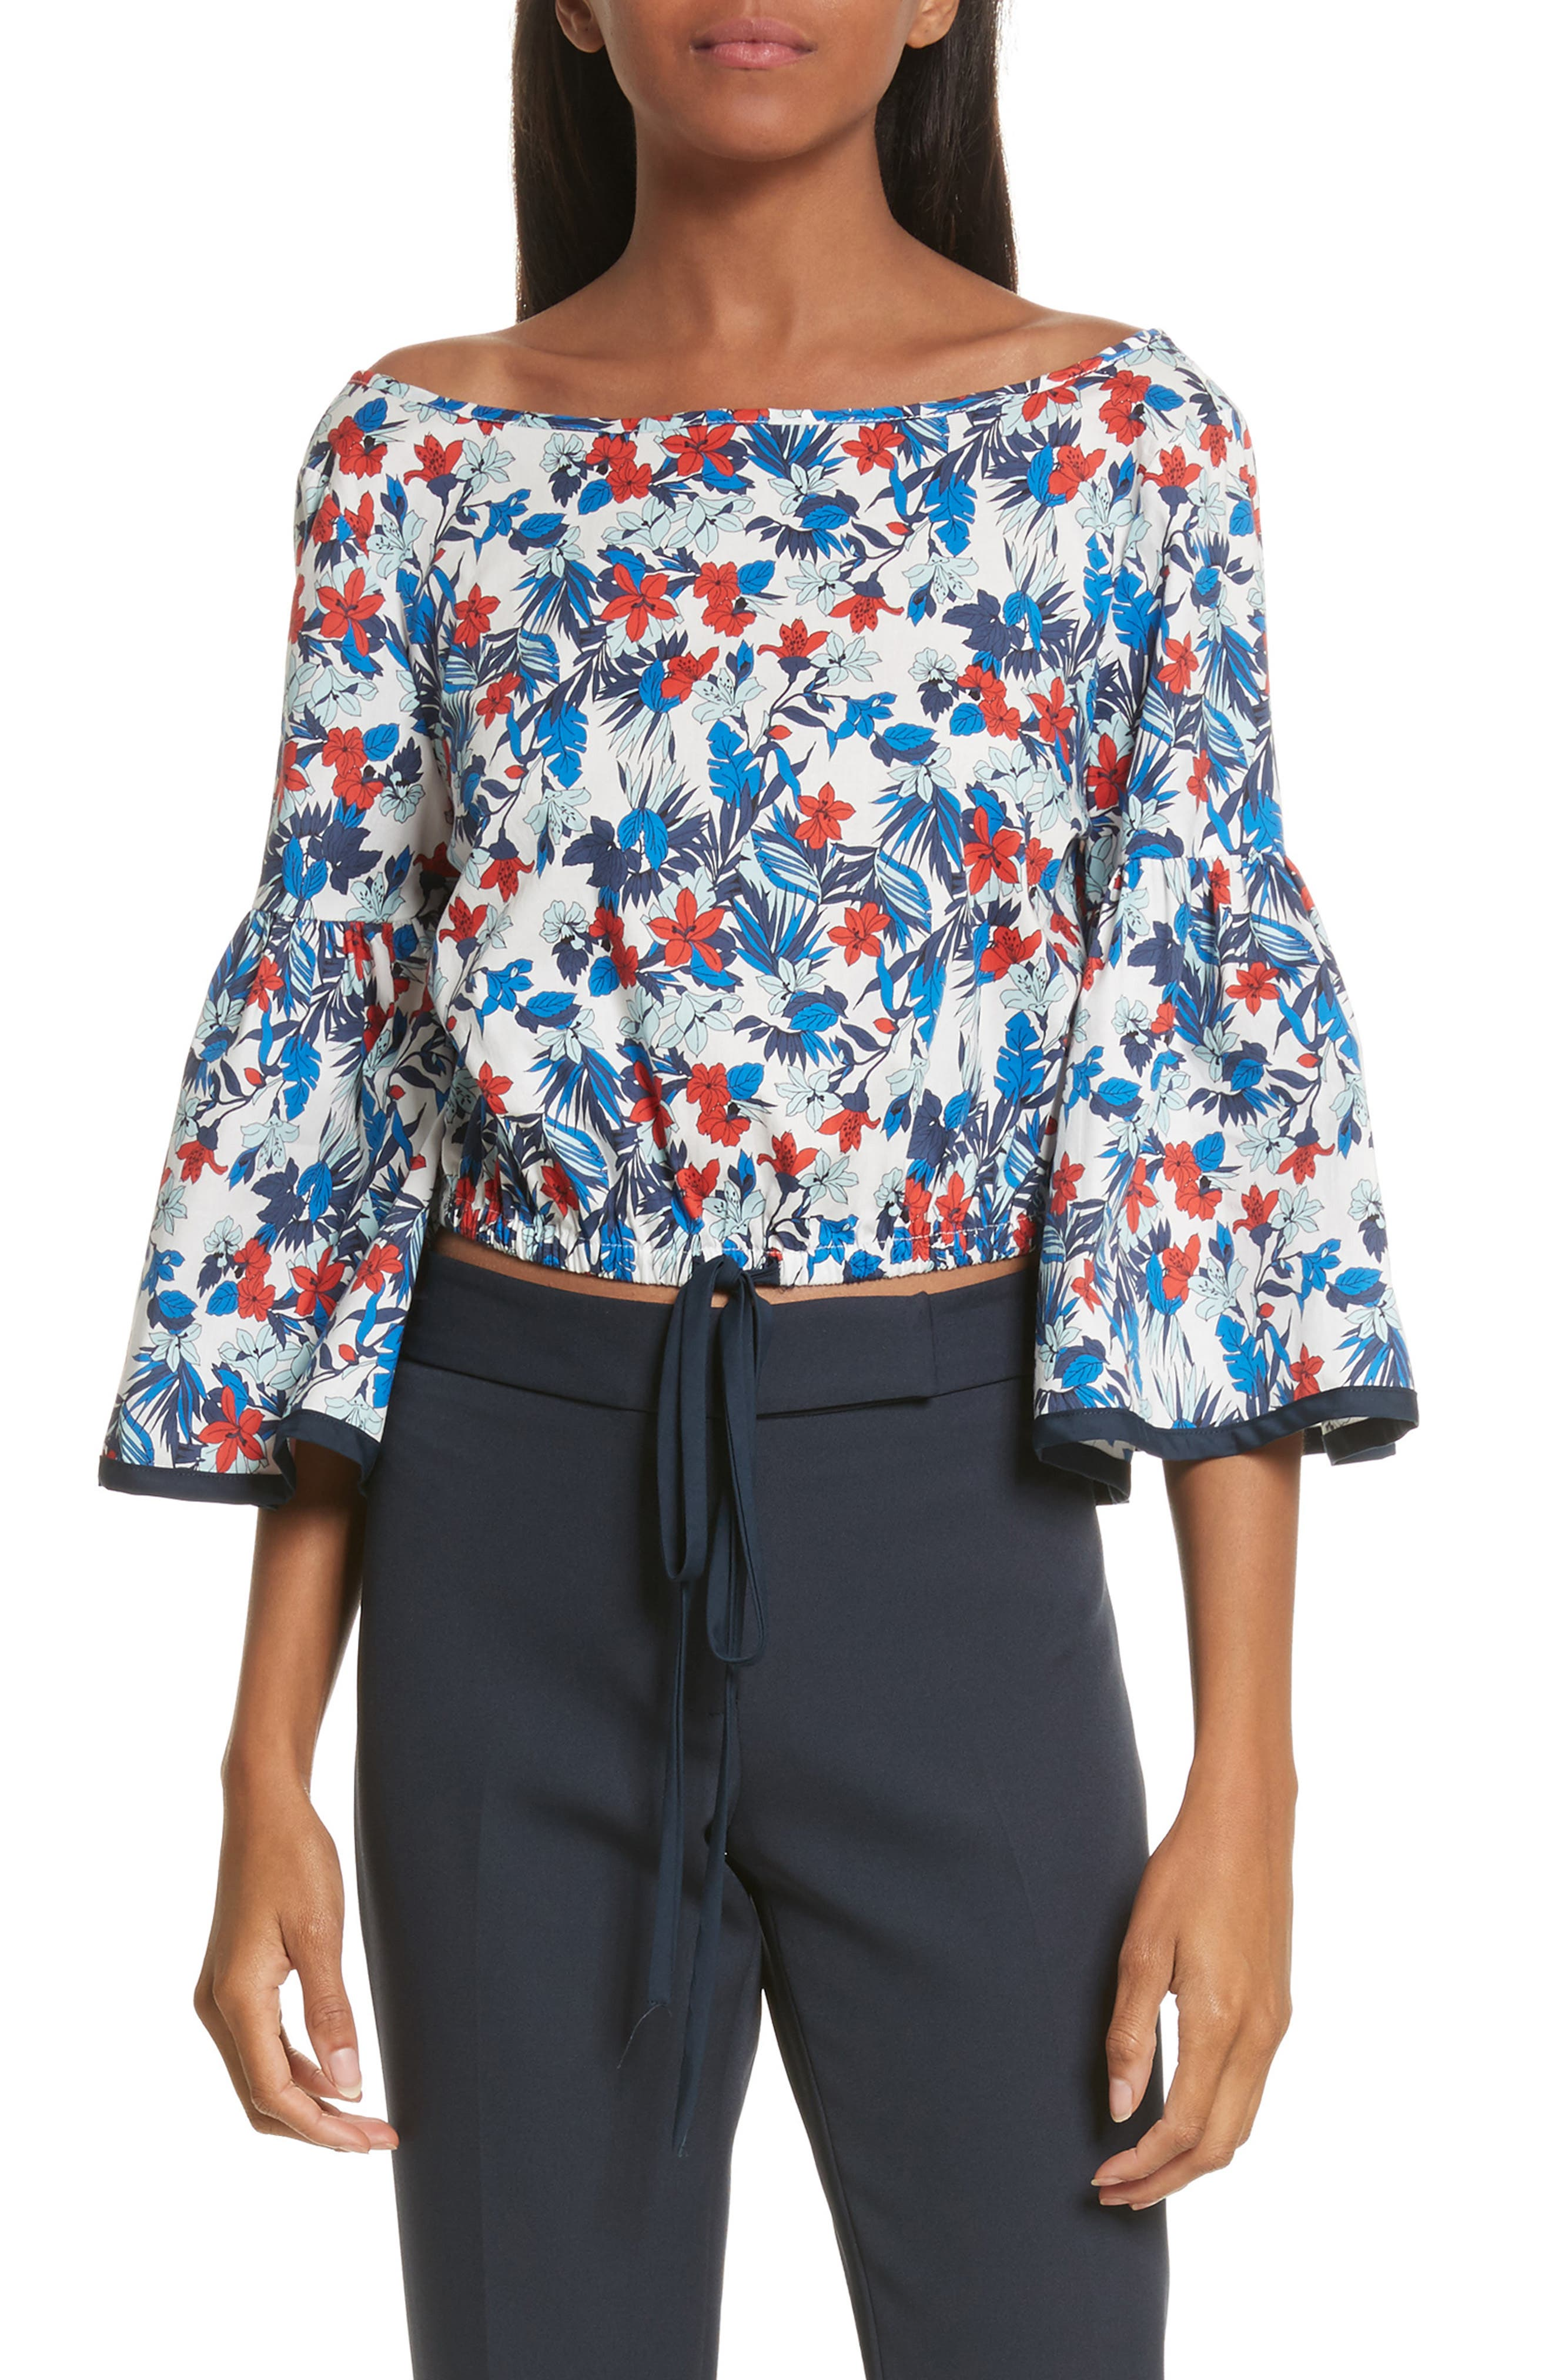 Alternate Image 1 Selected - Milly Hibiscus Print Stretch Cotton Top